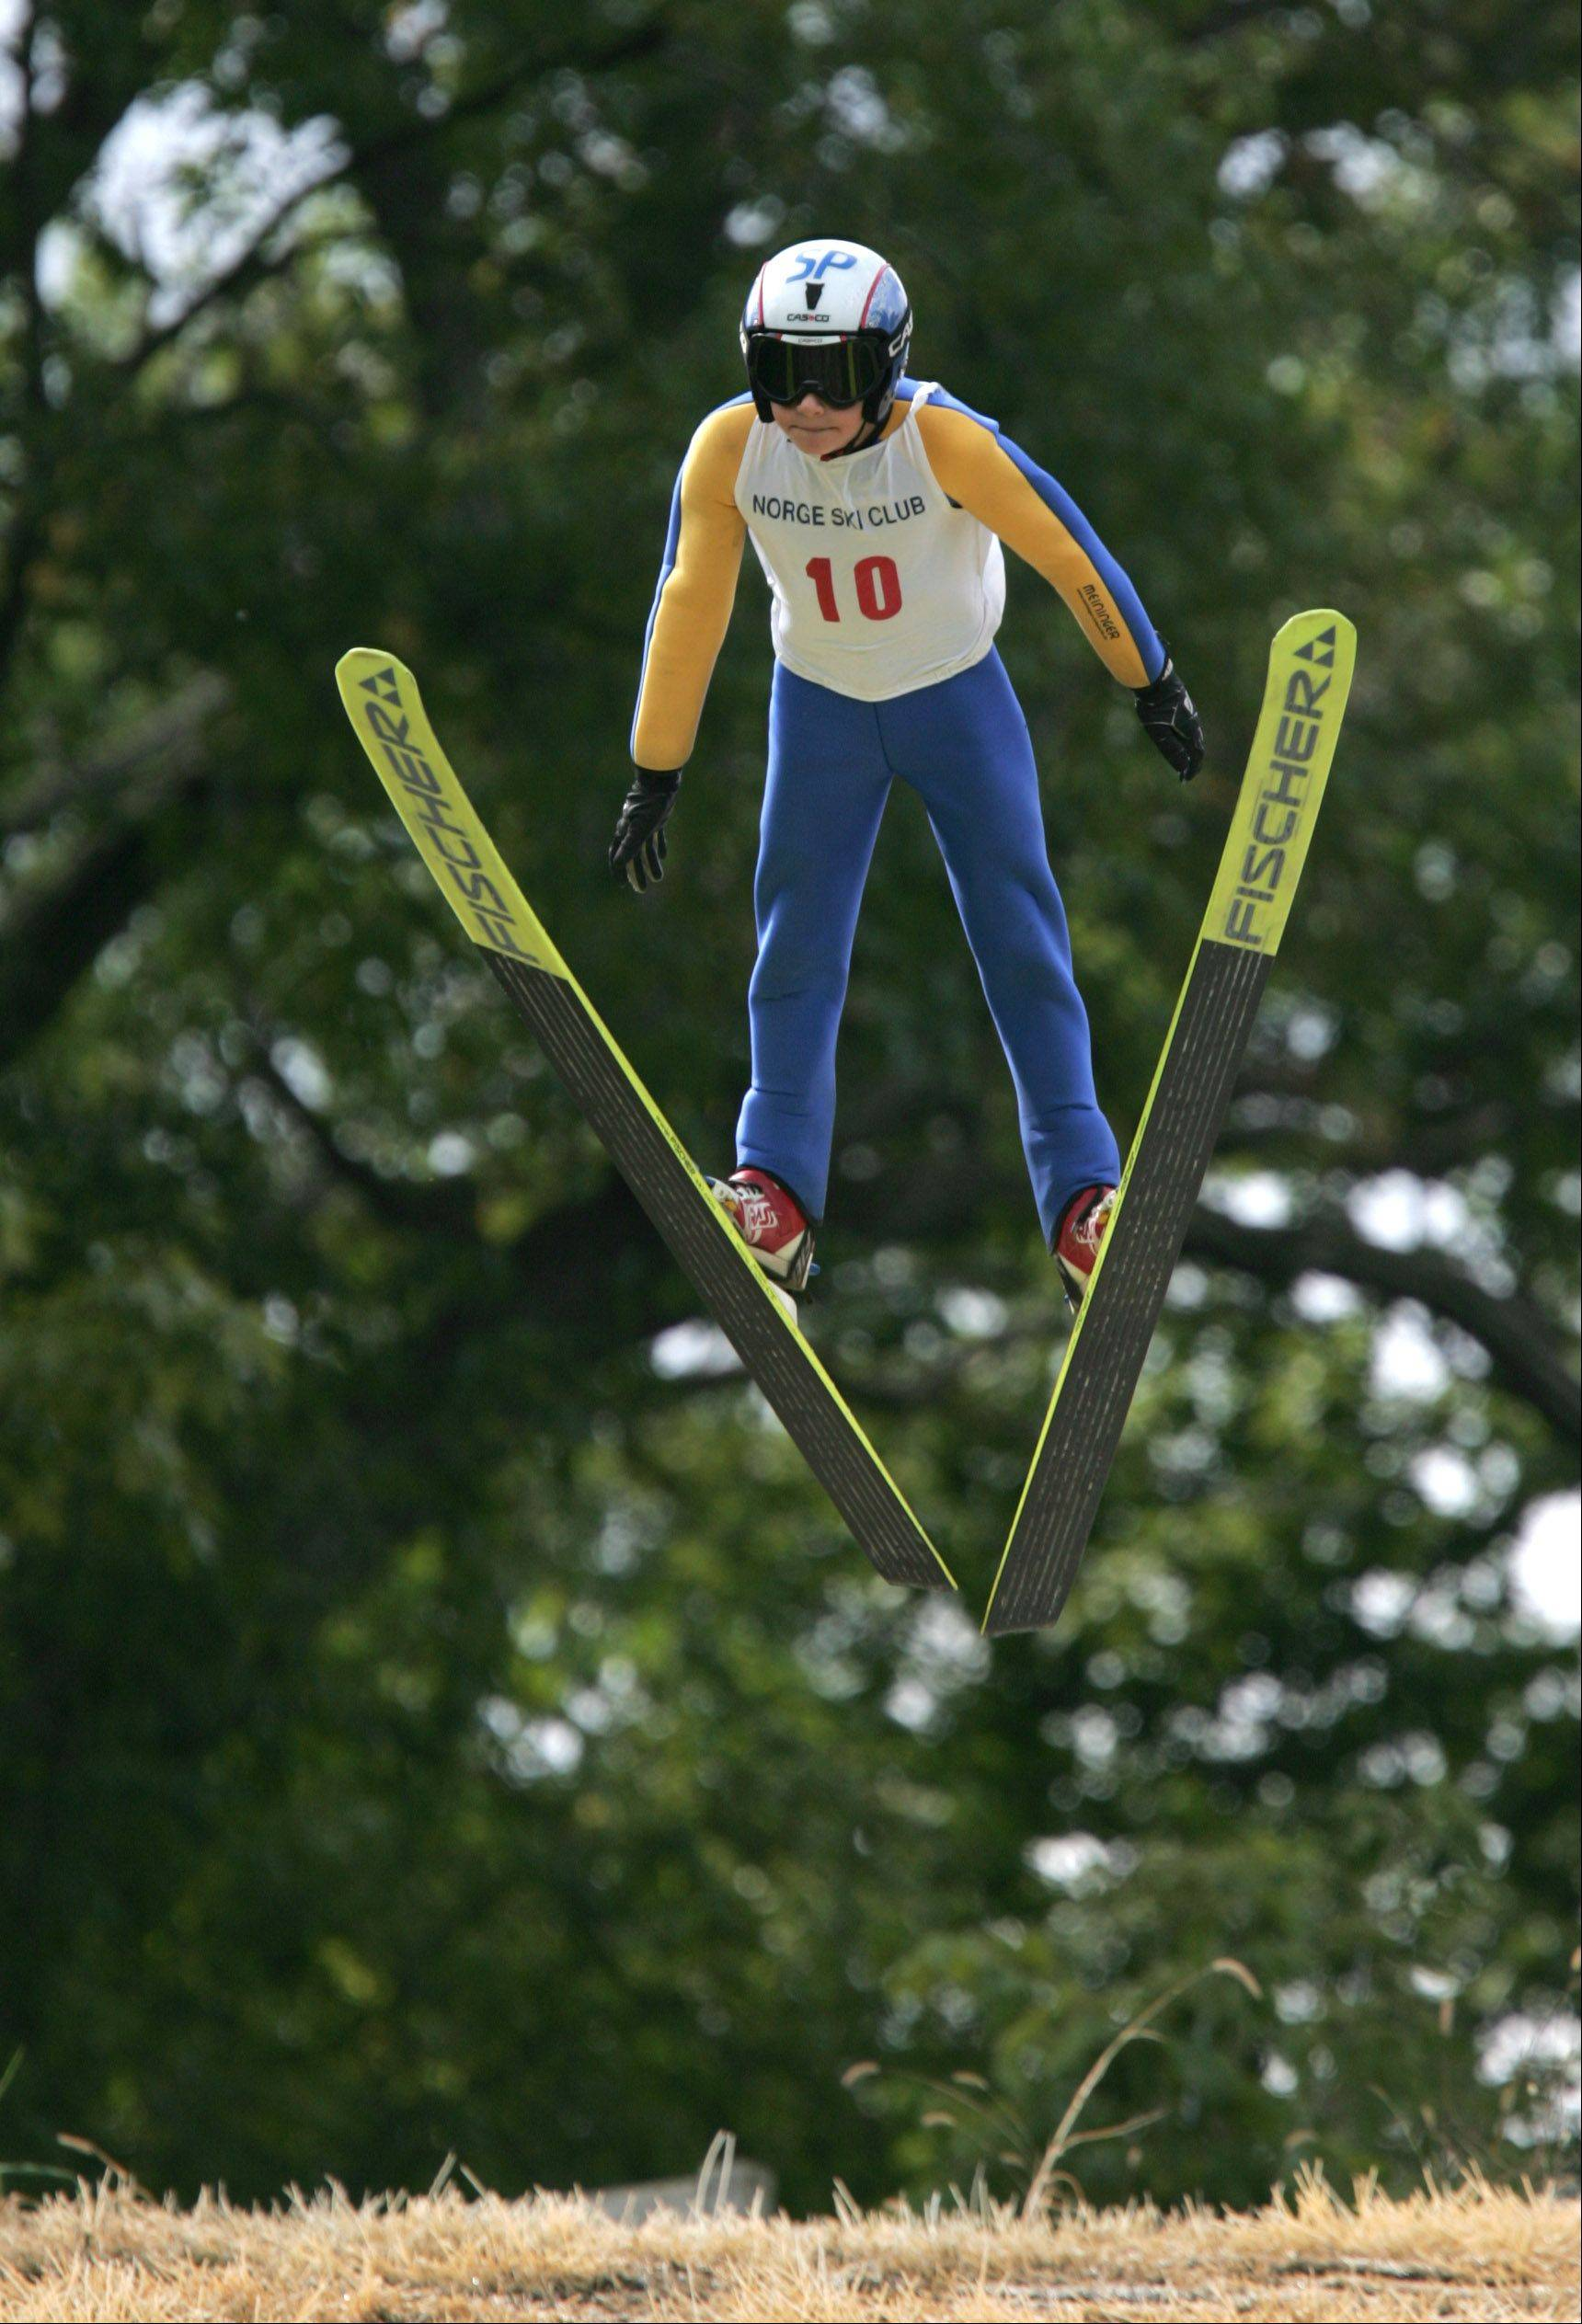 Ben Loomis, 10, sails through the air at the Norge Ski Jump in 2009.